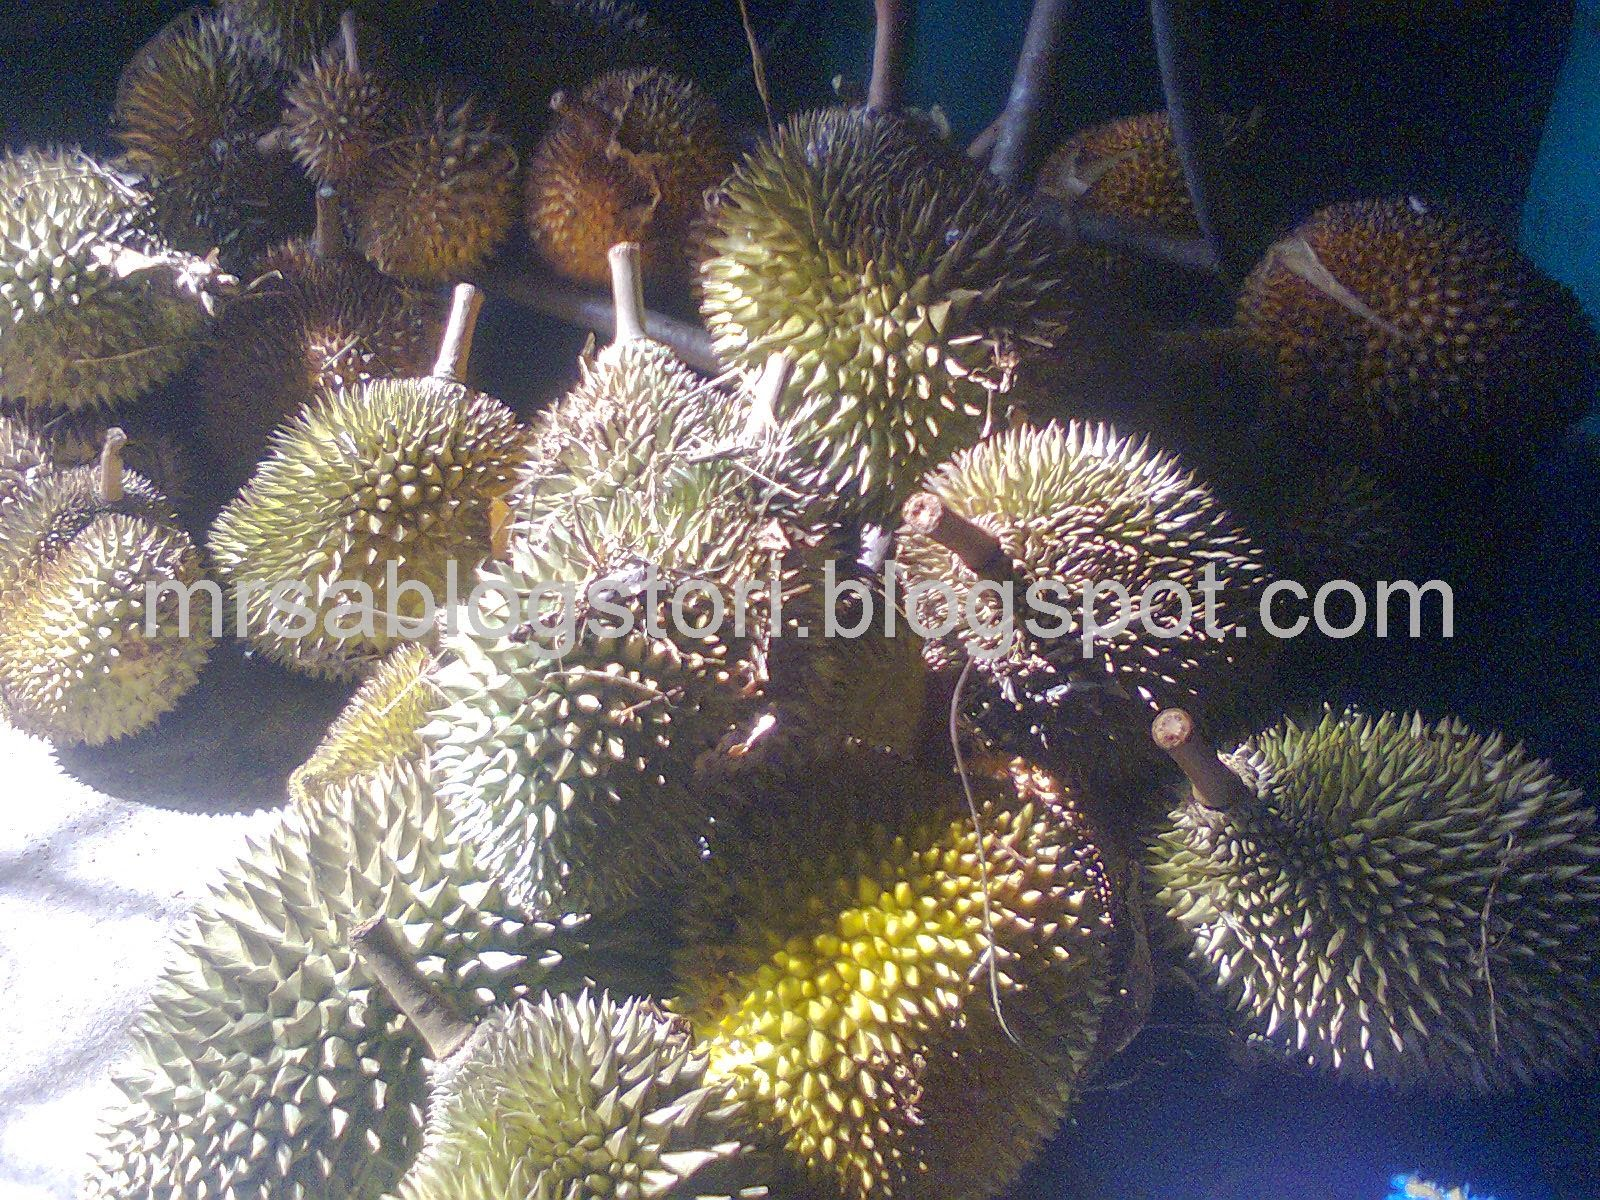 durian-kg-myhometown